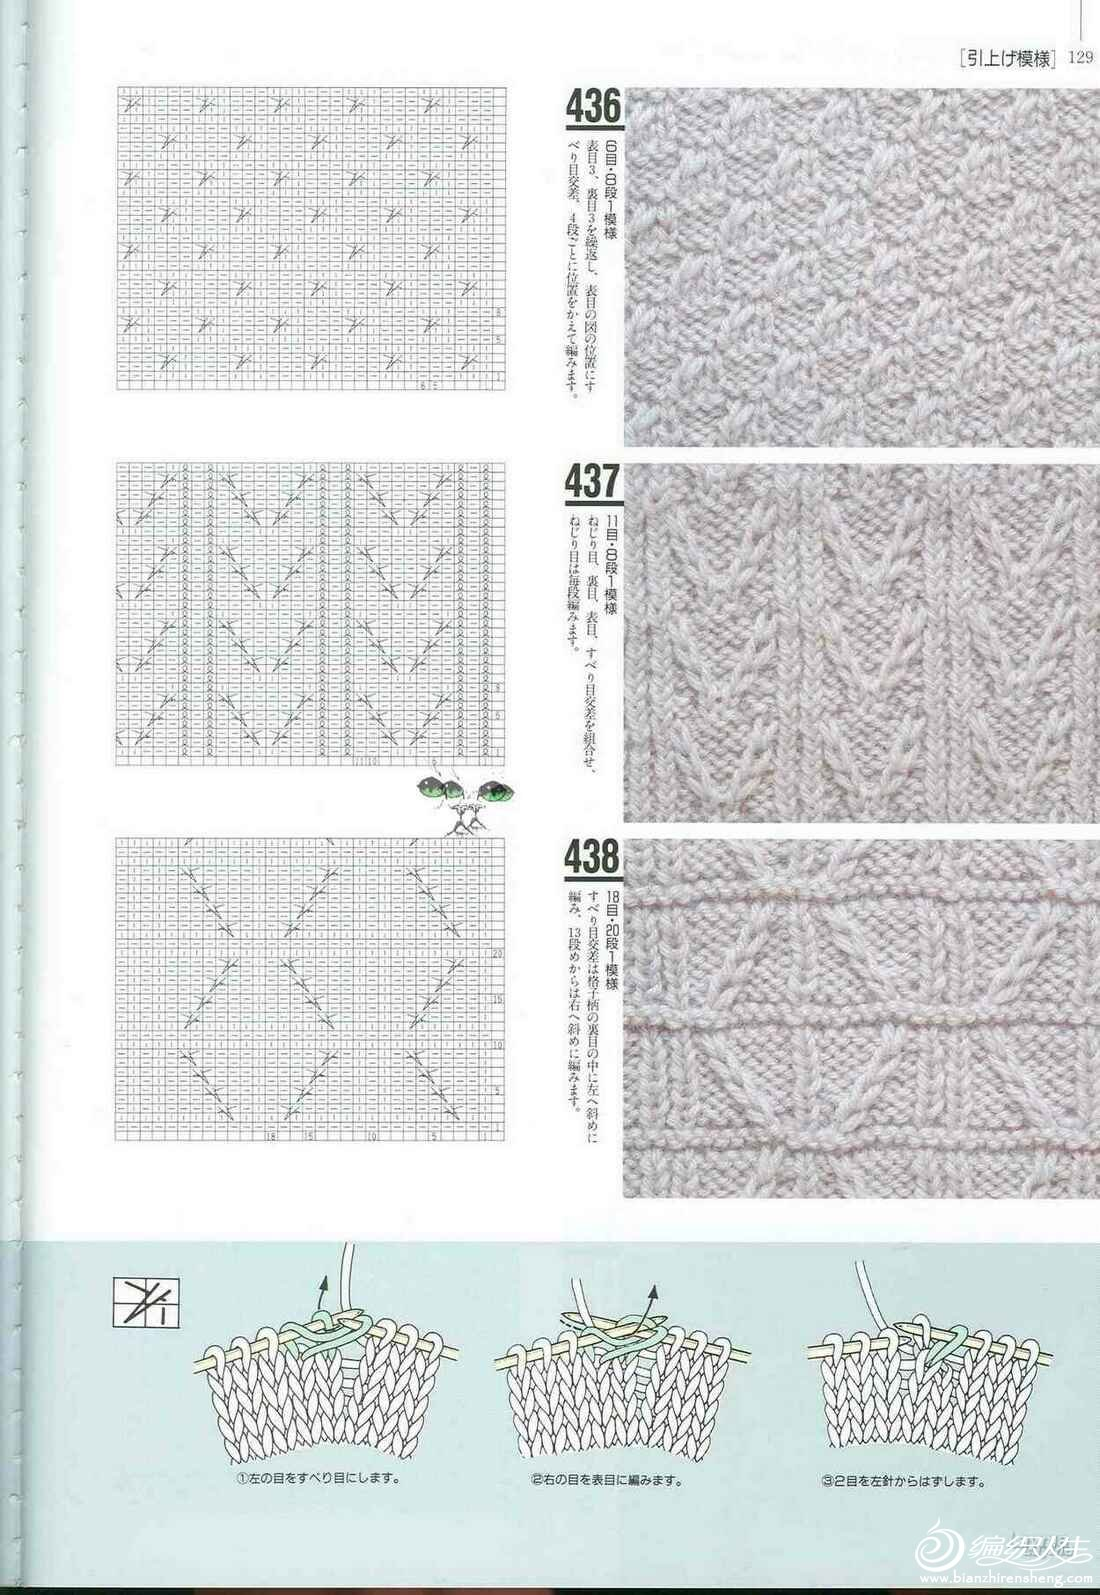 Knitting Patterns 500 126.jpg